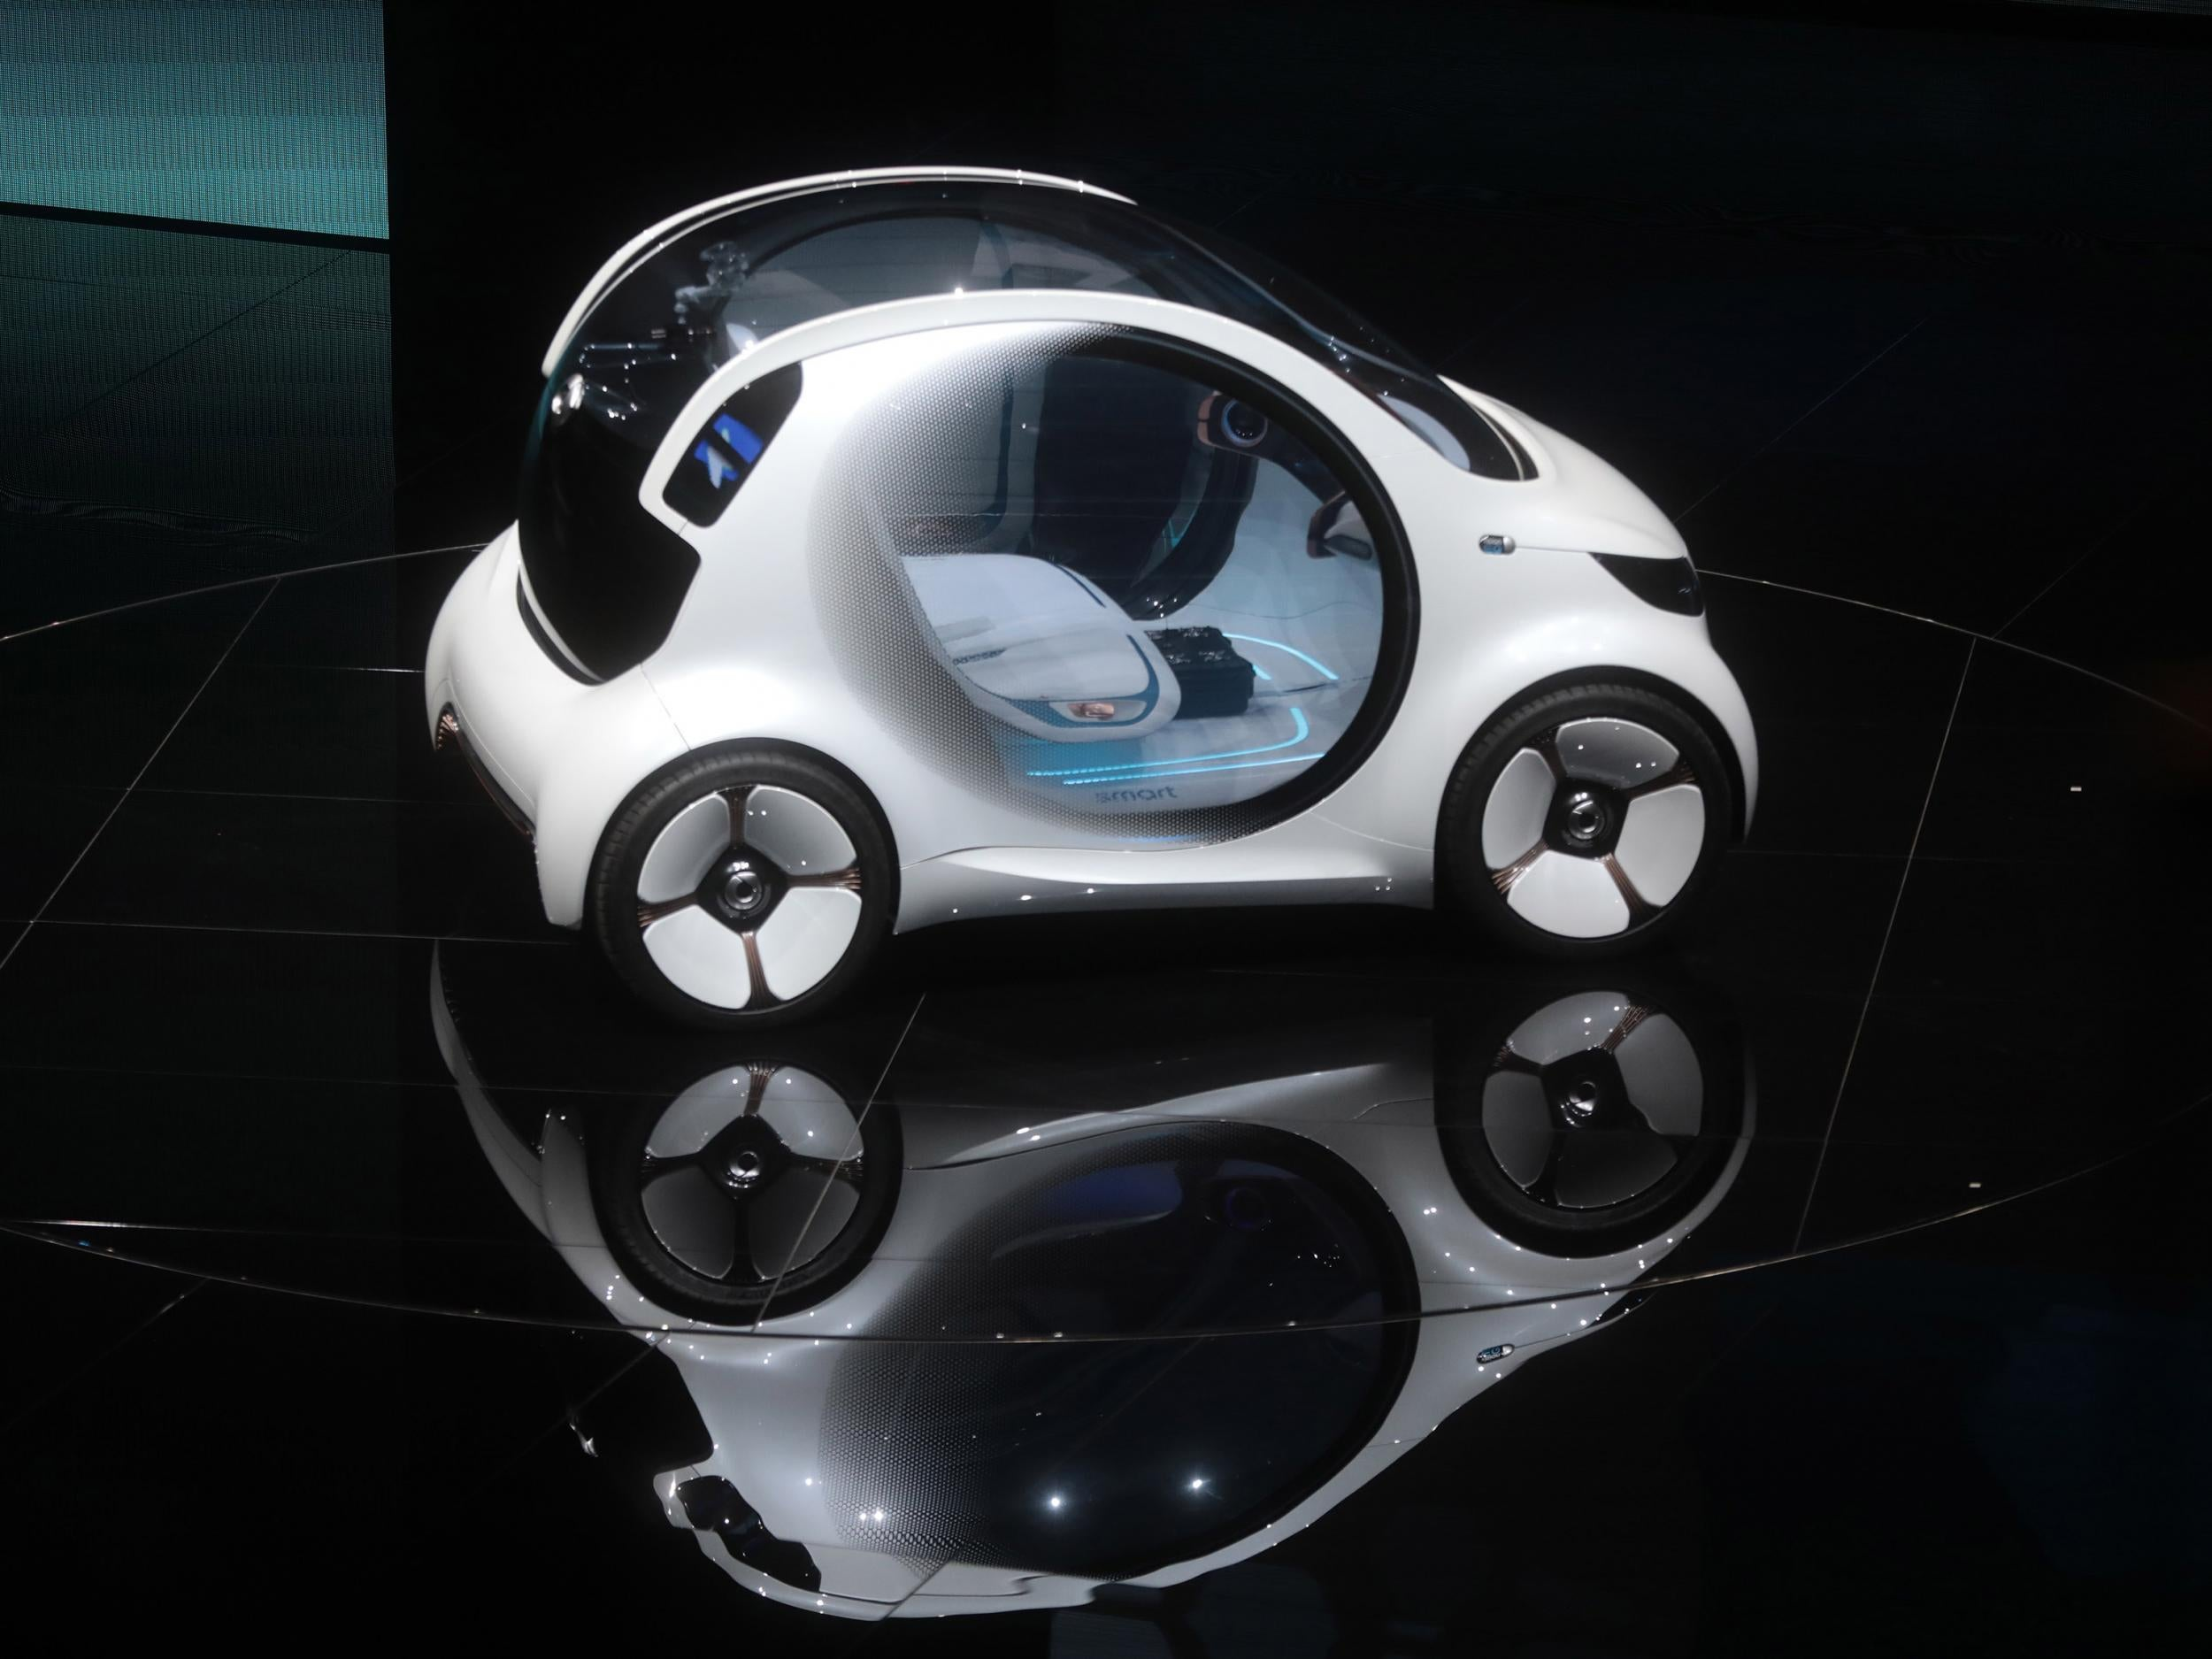 driverless cars - latest news, breaking stories and comment - the